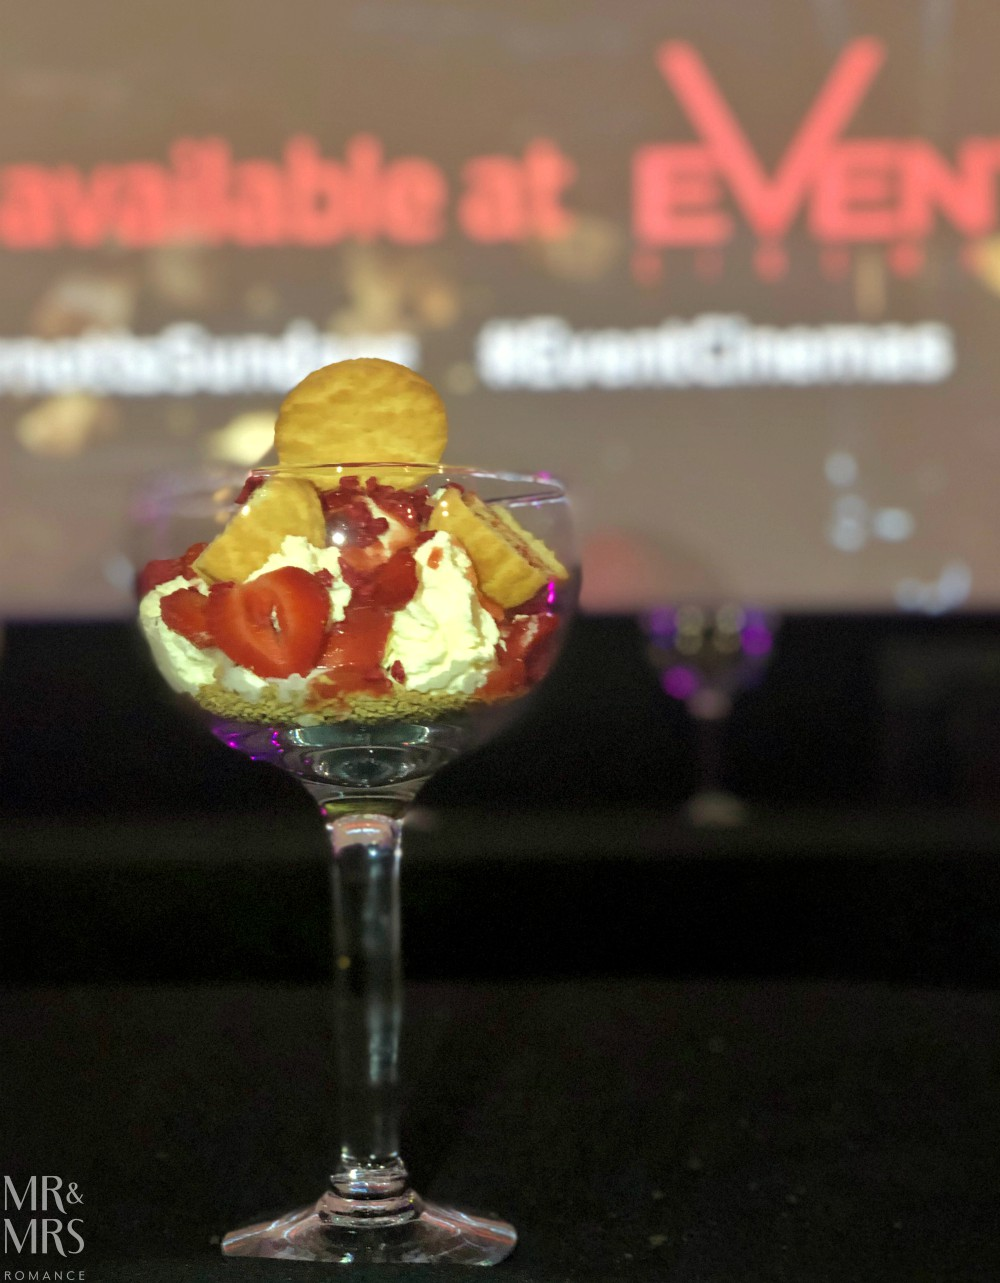 Weekly Edition - Gold Class sundae The Full Monte Carlo